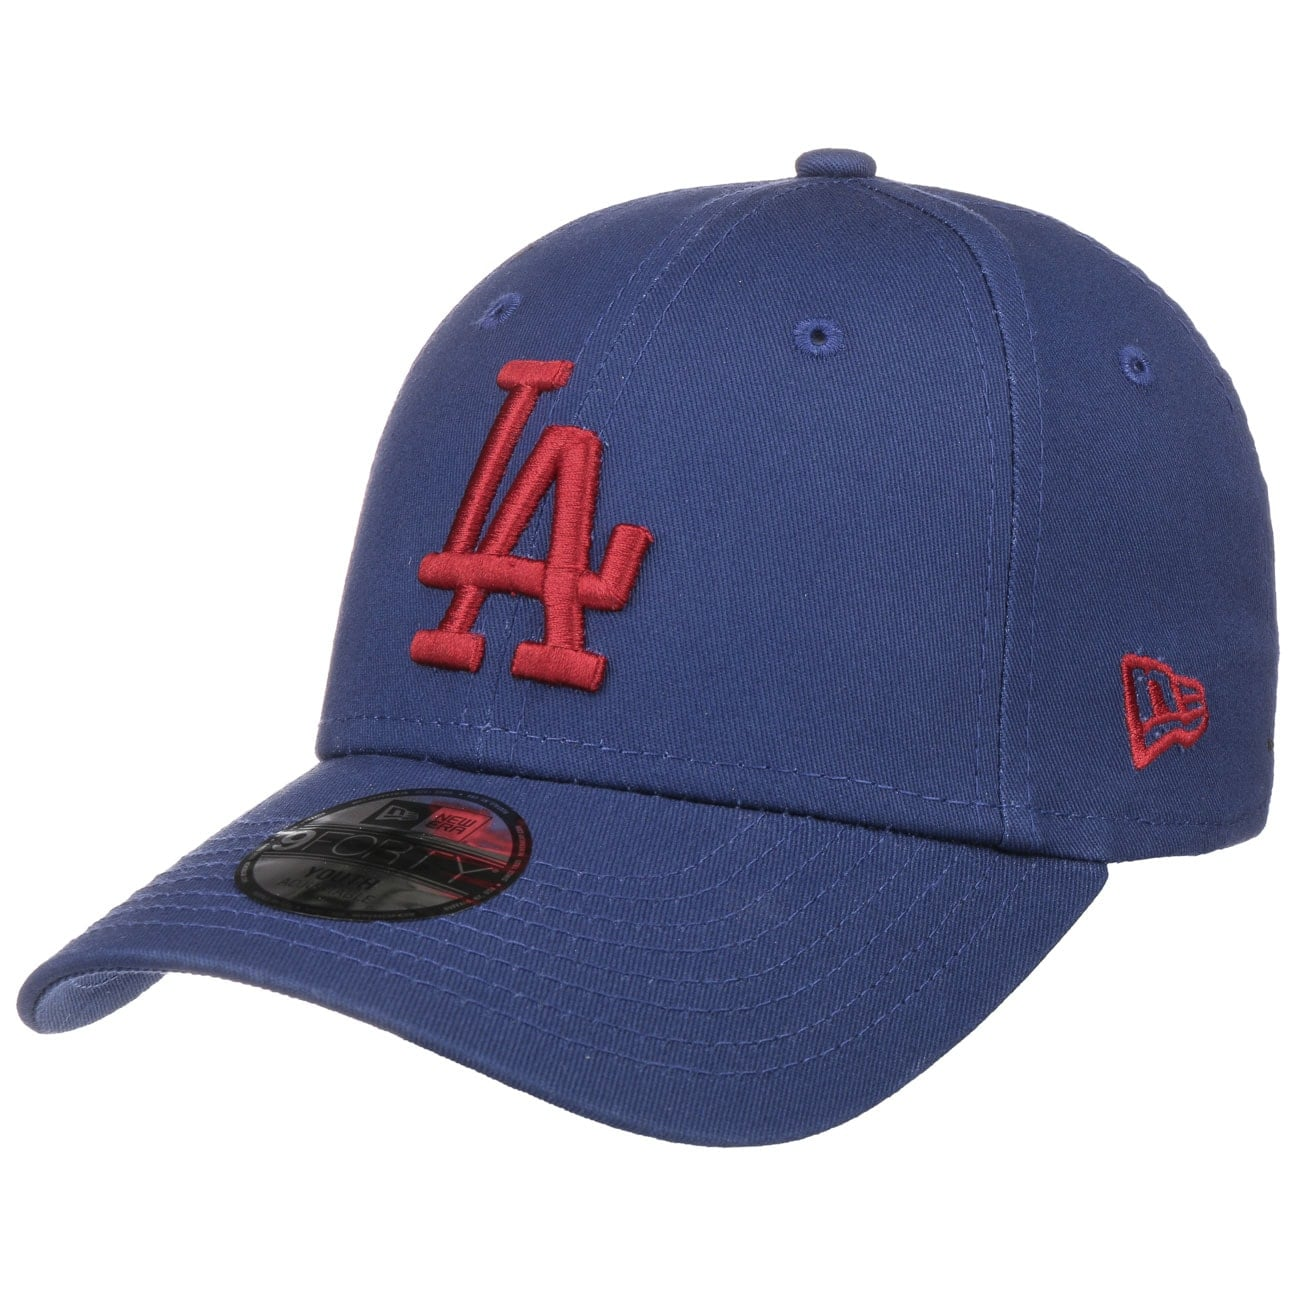 940 League Ess KIDS Dodgers by New Era